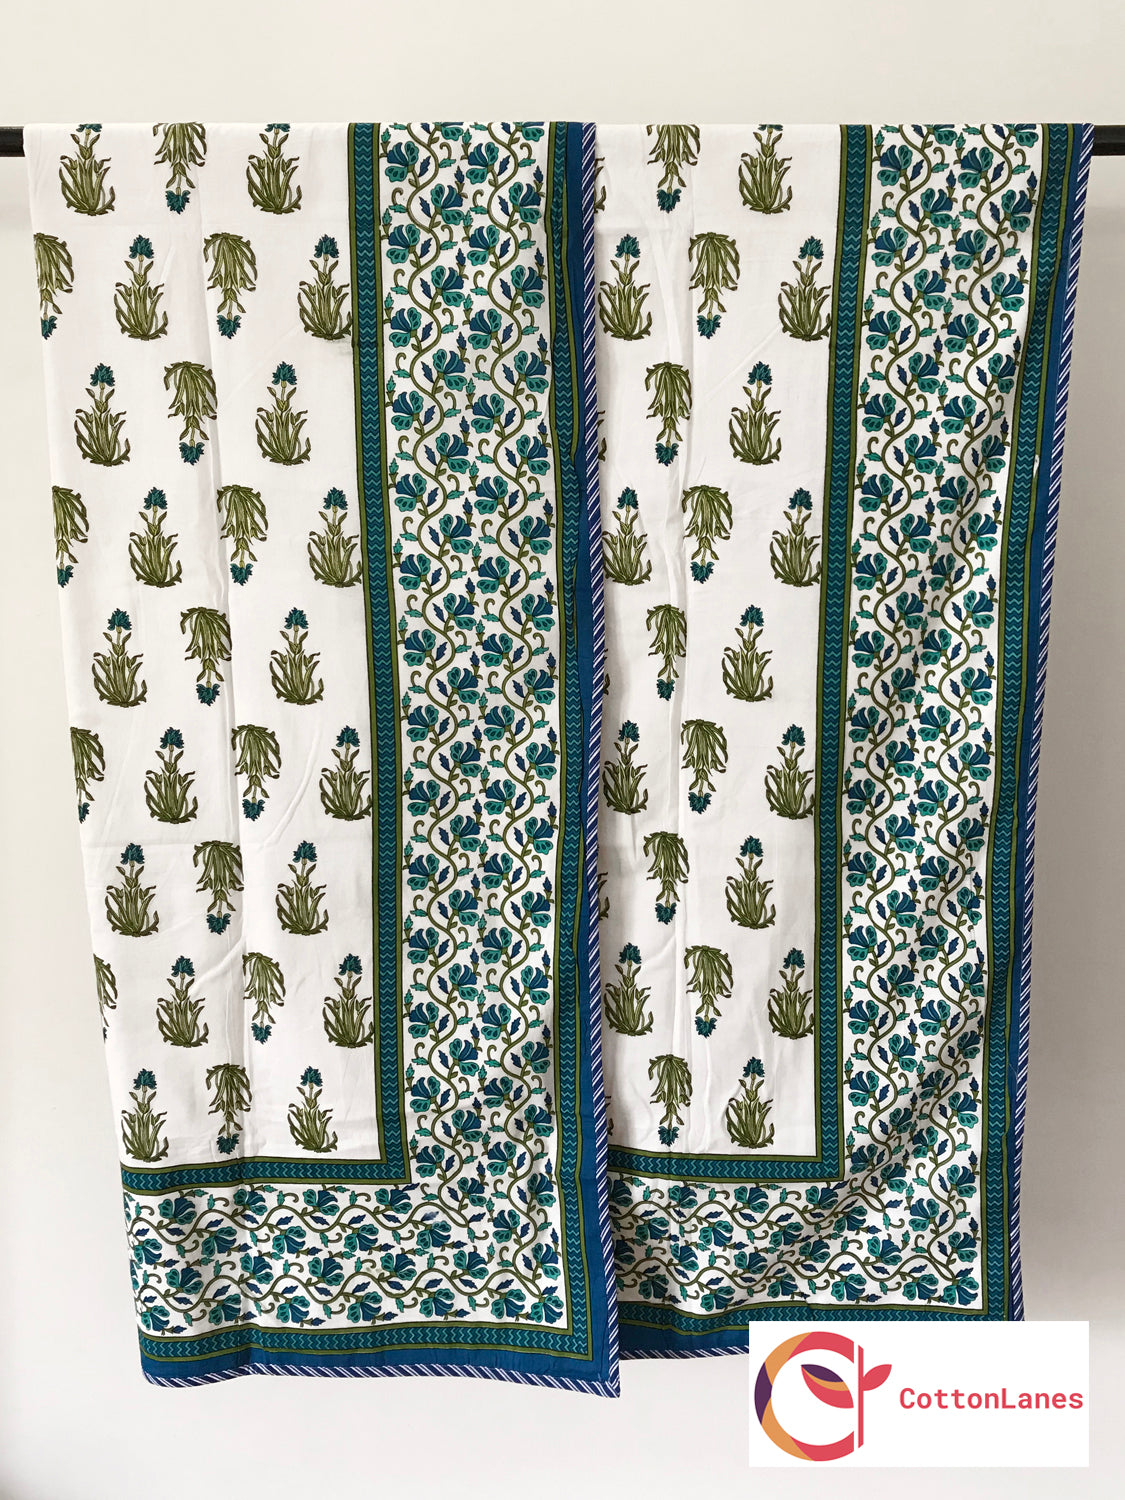 Green & Blue Motif Single Bed Reversible Mughal Comforter-CottonLanes